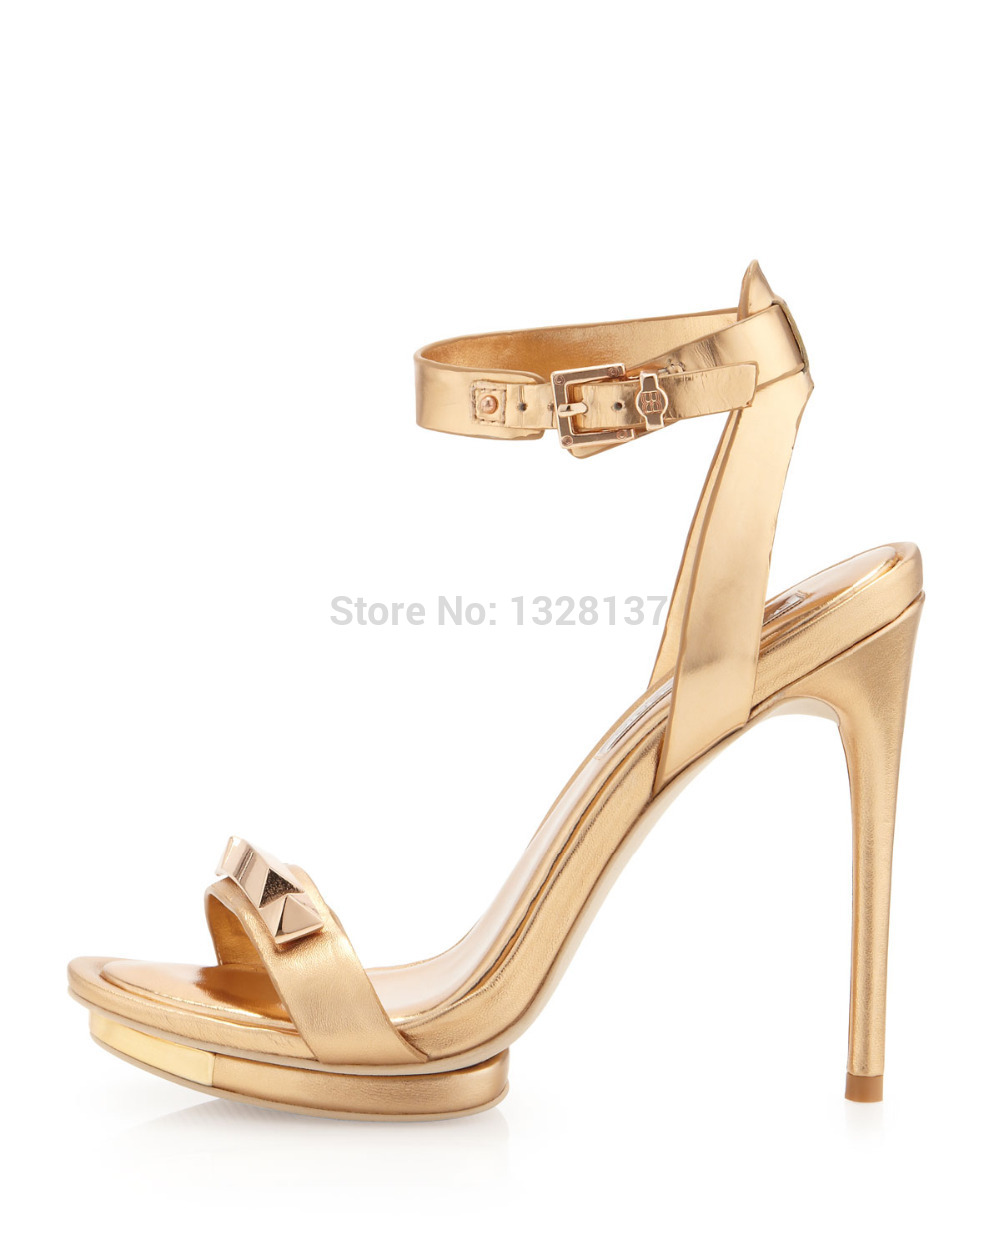 Compare Prices on Cheap Strappy Heels- Online Shopping/Buy Low ...